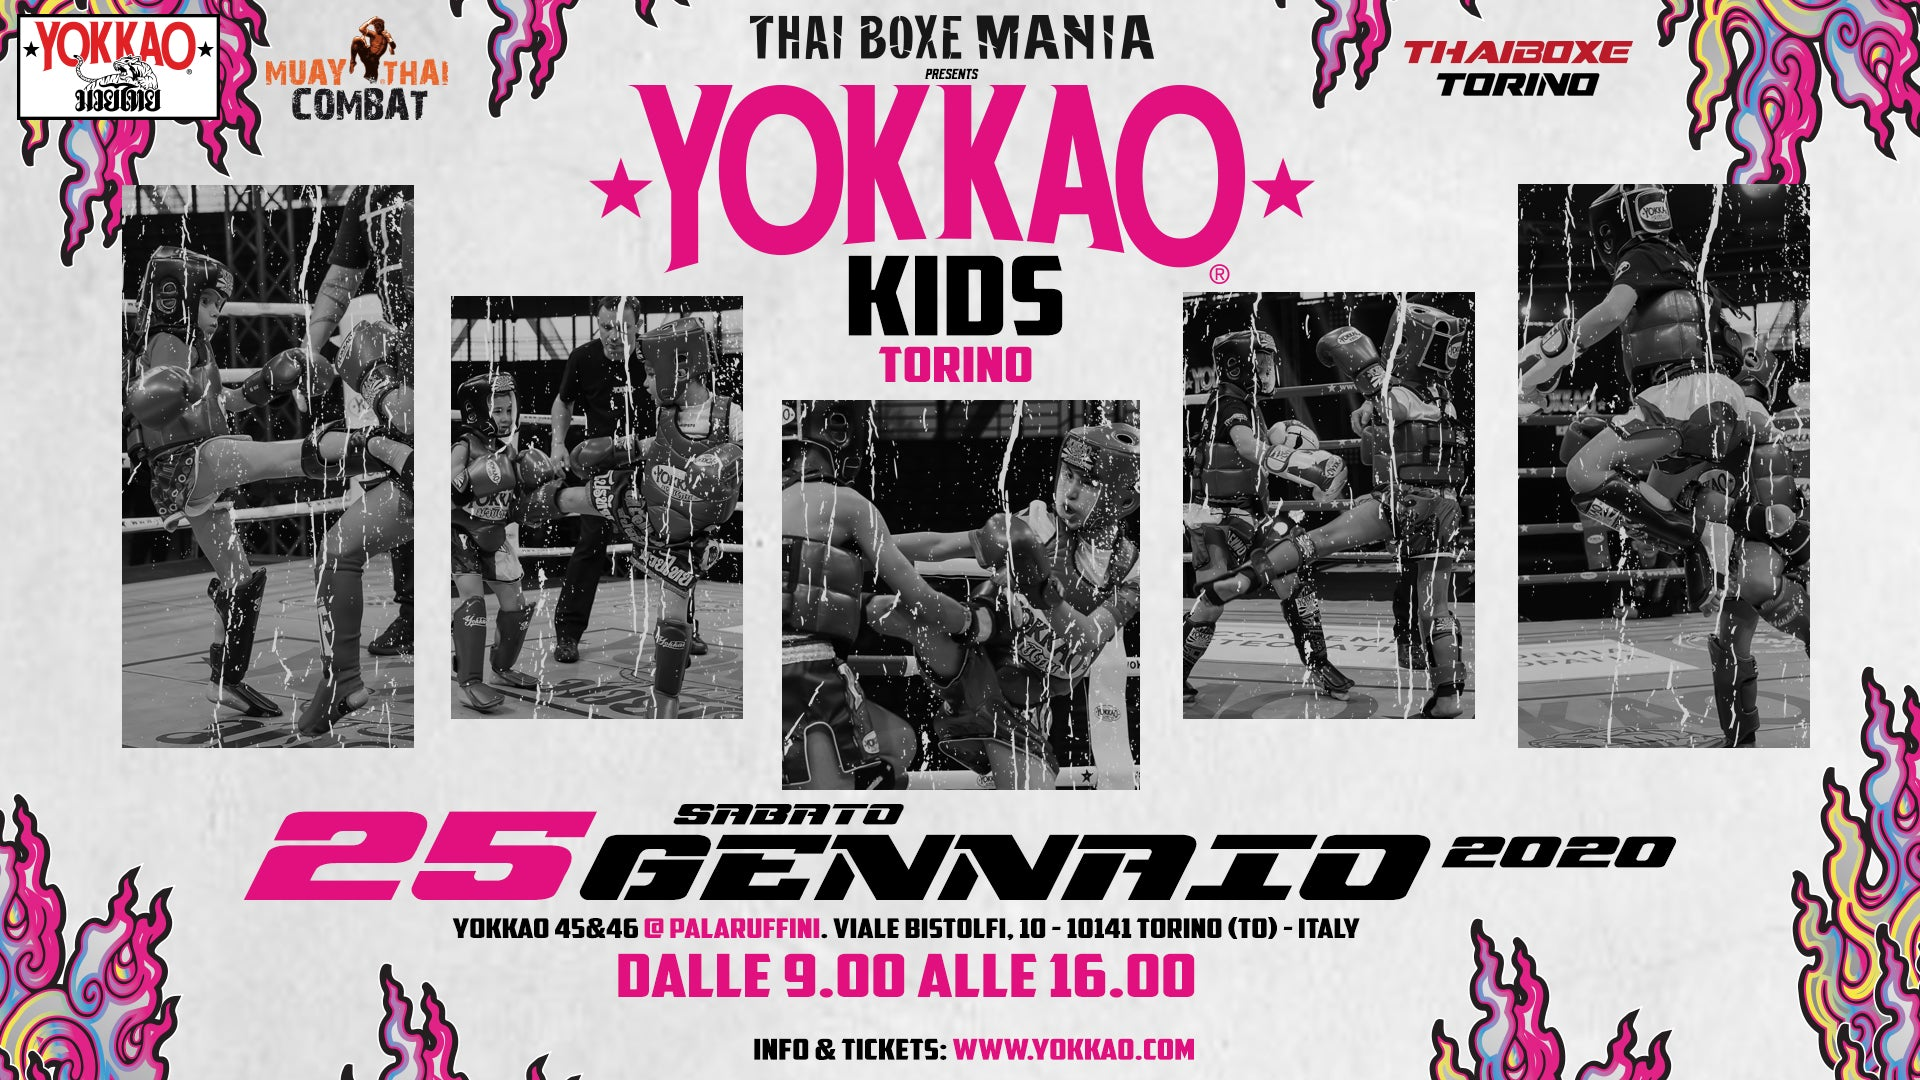 YOKKAO Kids Torino January 2020